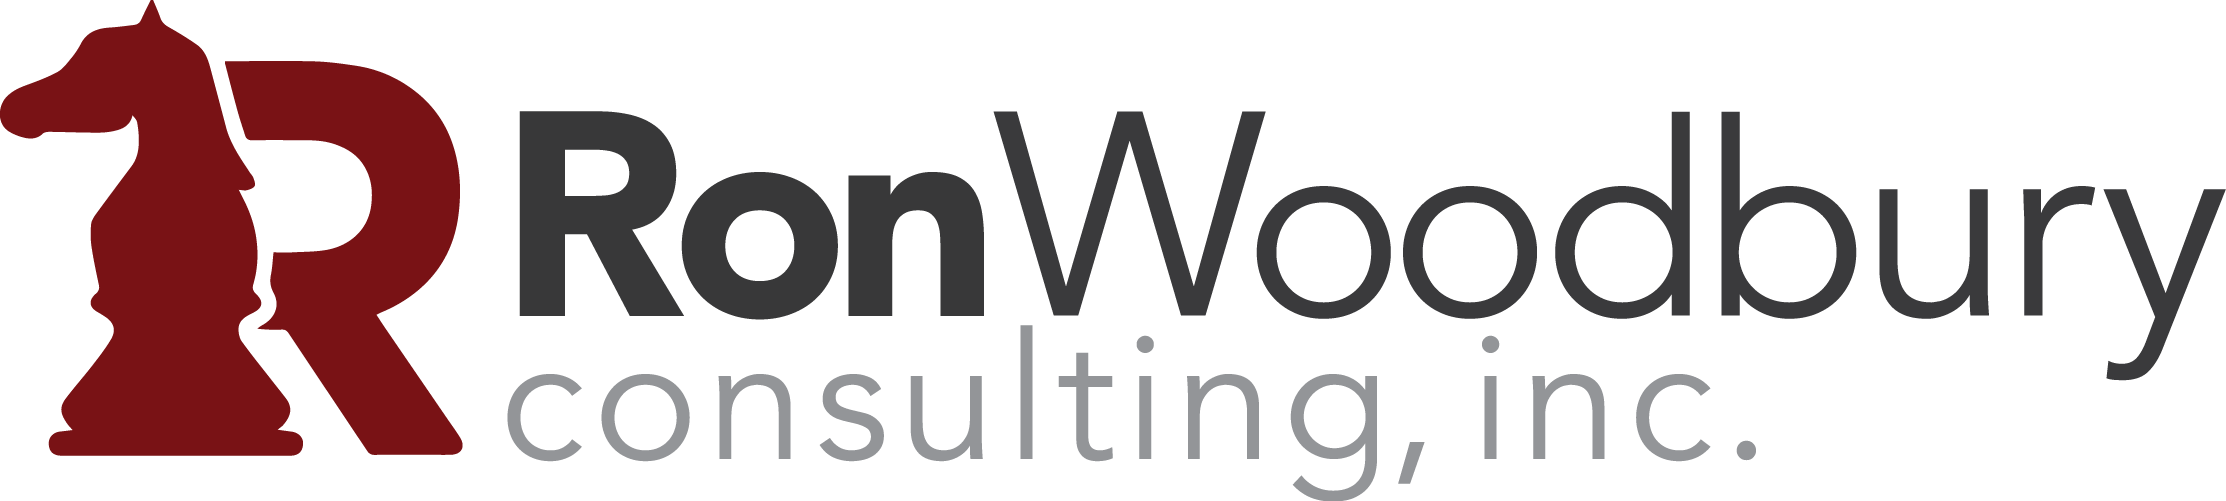 Ron Woodbury Consulting